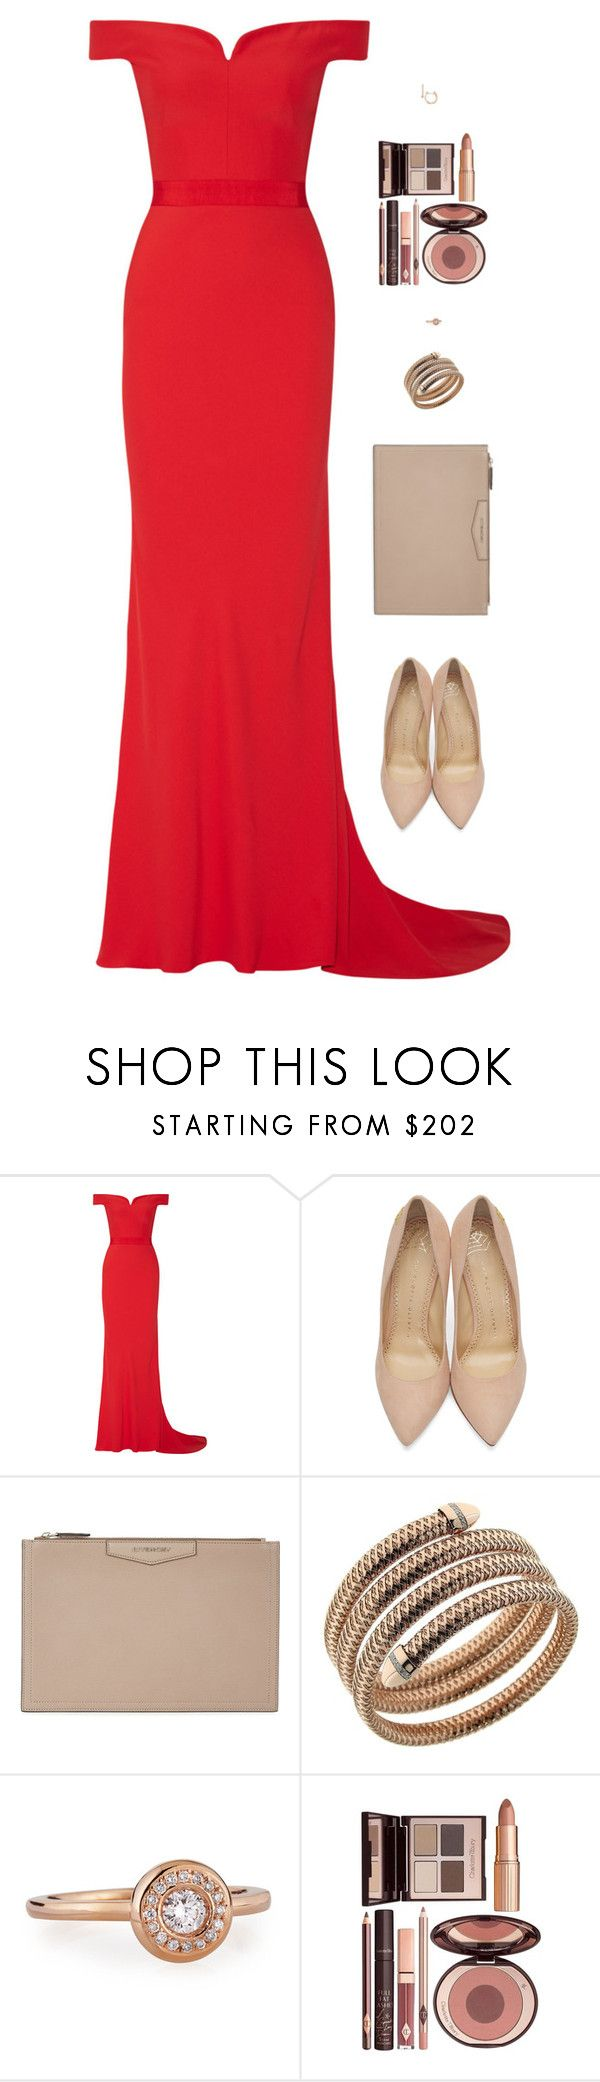 """""""Sin título #4487"""" by mdmsb on Polyvore featuring moda, Alexander McQueen, Charlotte Olympia, Givenchy, Roberto Coin y Charlotte Tilbury"""